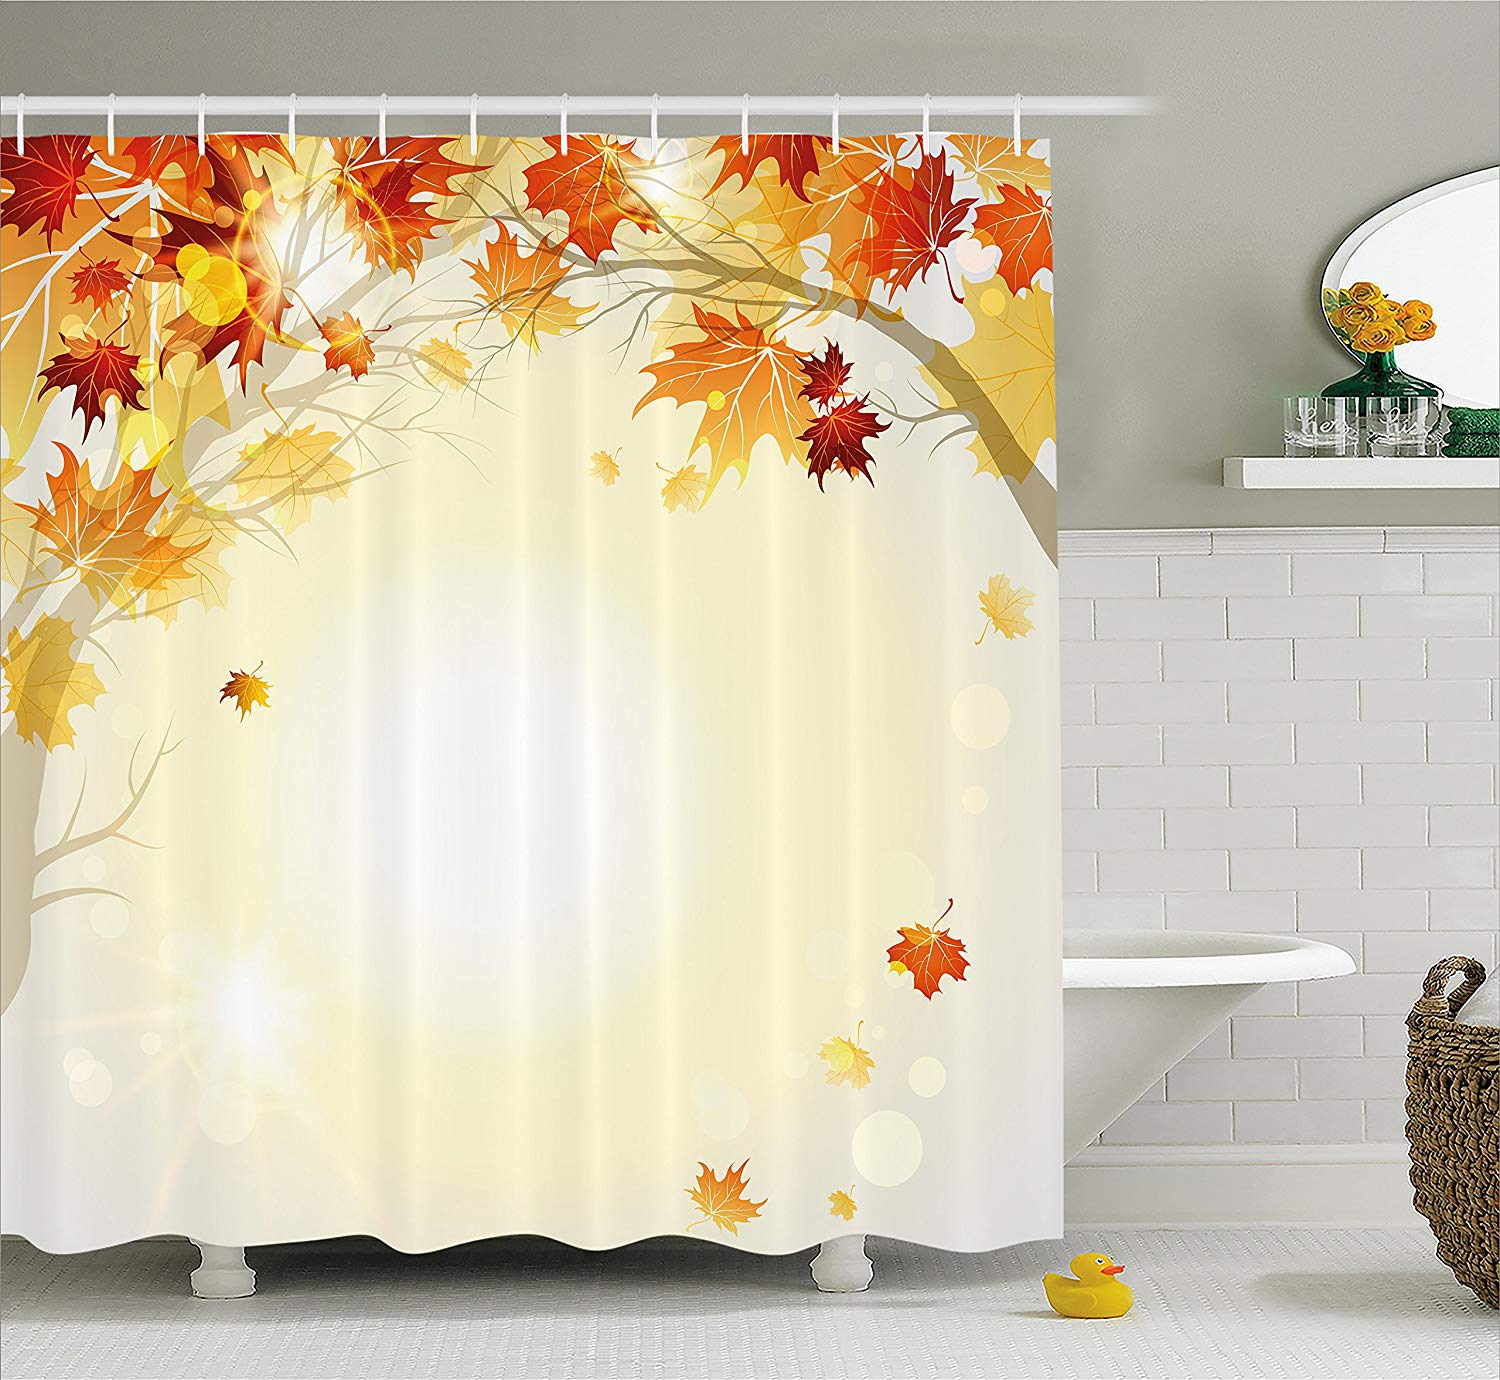 Shower Curtains Yellow Maple Leaves In Fall 71 Waterproof